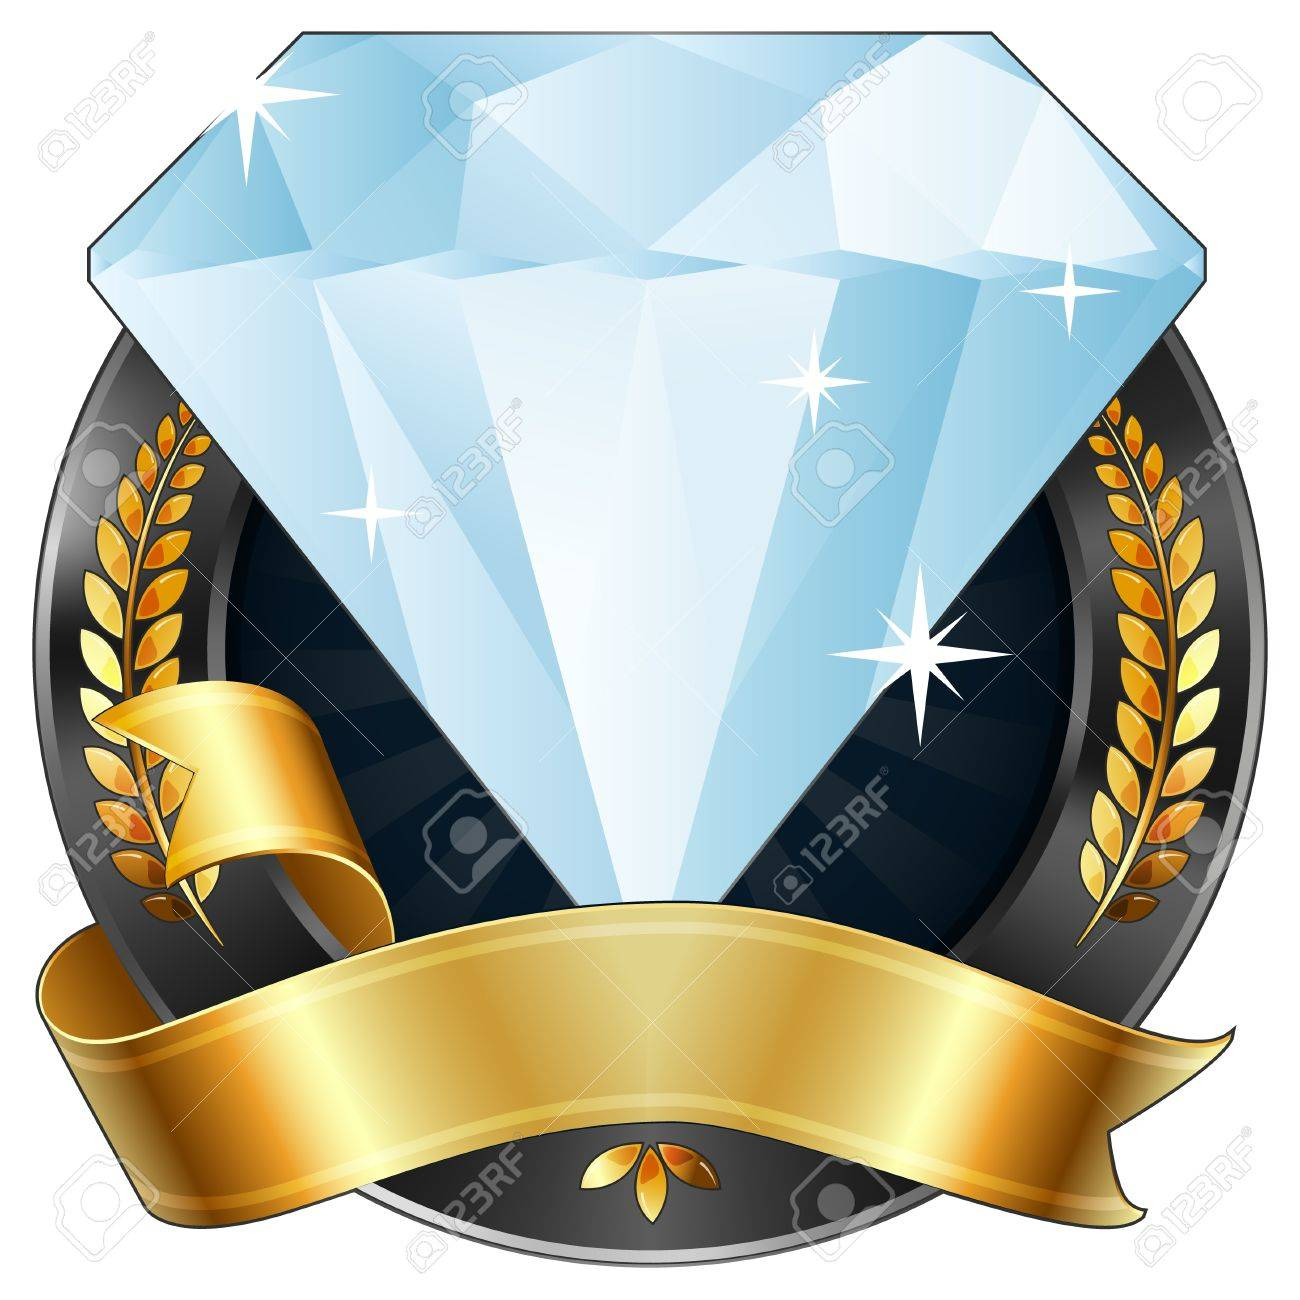 a sparkling diamond gem award or sports plaque medal. Gold ribbon is wrapped around it. Gold wreaths surround the reward. Representations include: Achievement, Winning, 1st Place, Best Player or Most Valuable Player of a game, Quality Product, or any othe Stock Vector - 10059638